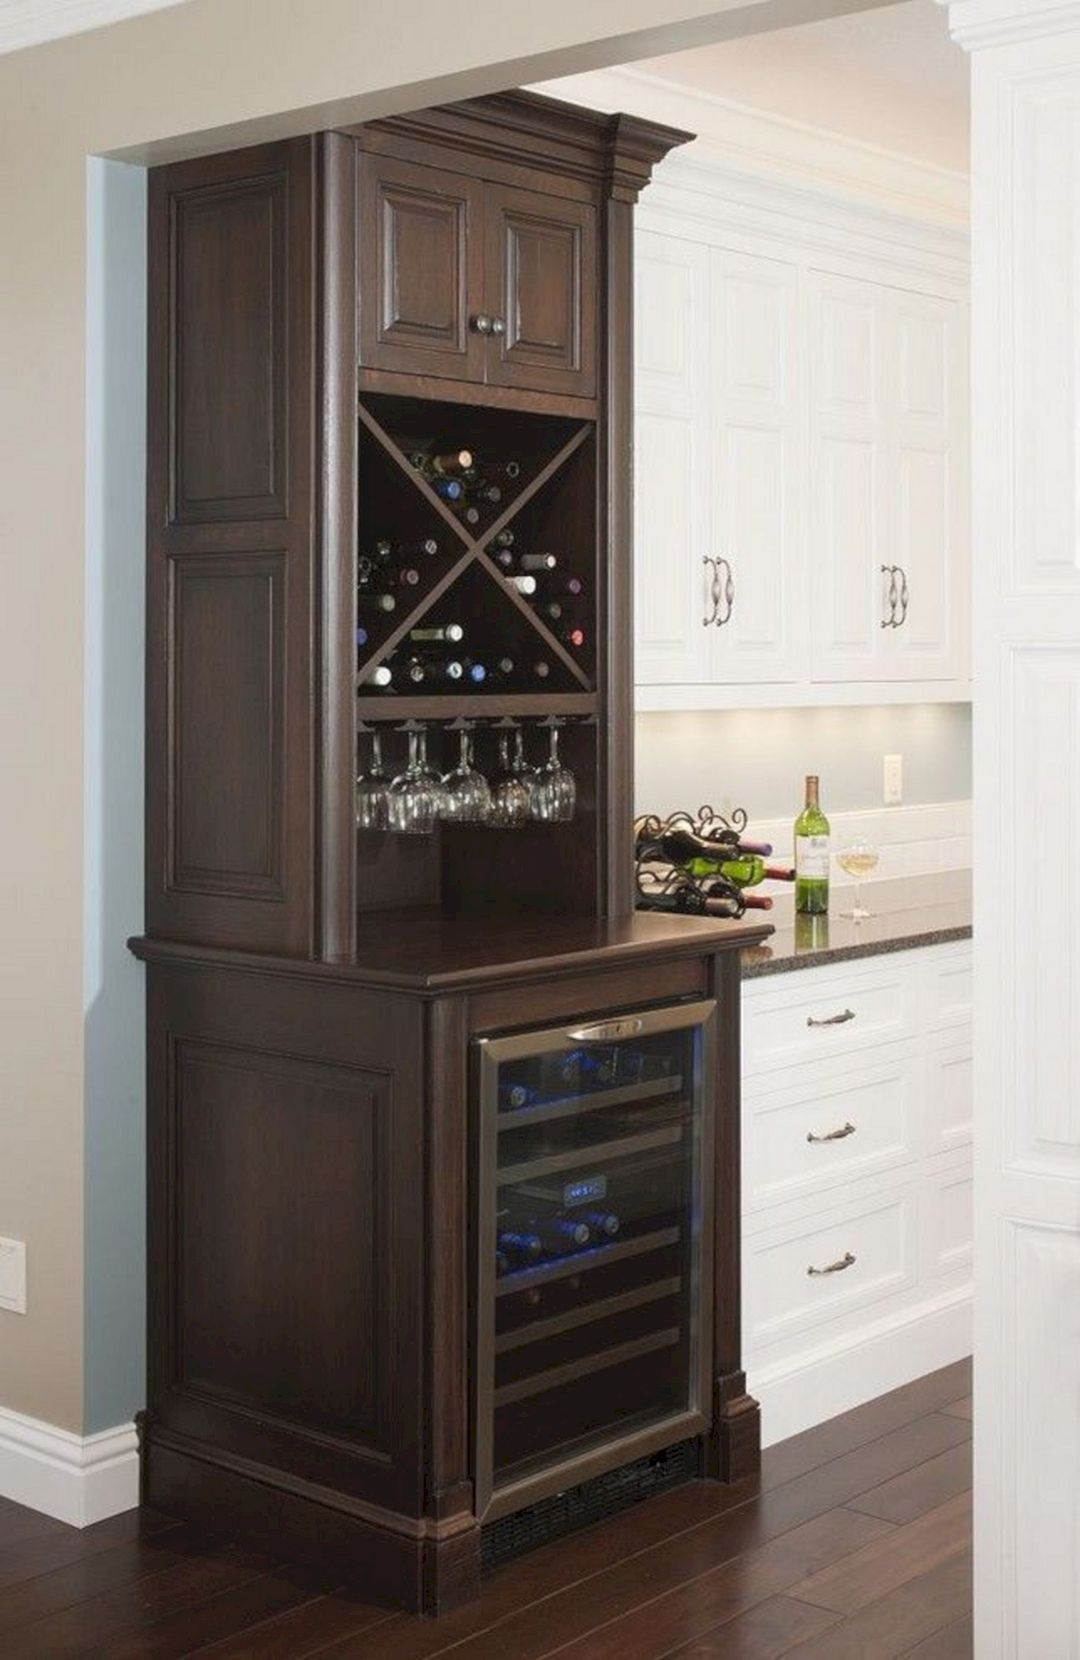 Tresanti thermoelectric Wine Cooler and 2021 in